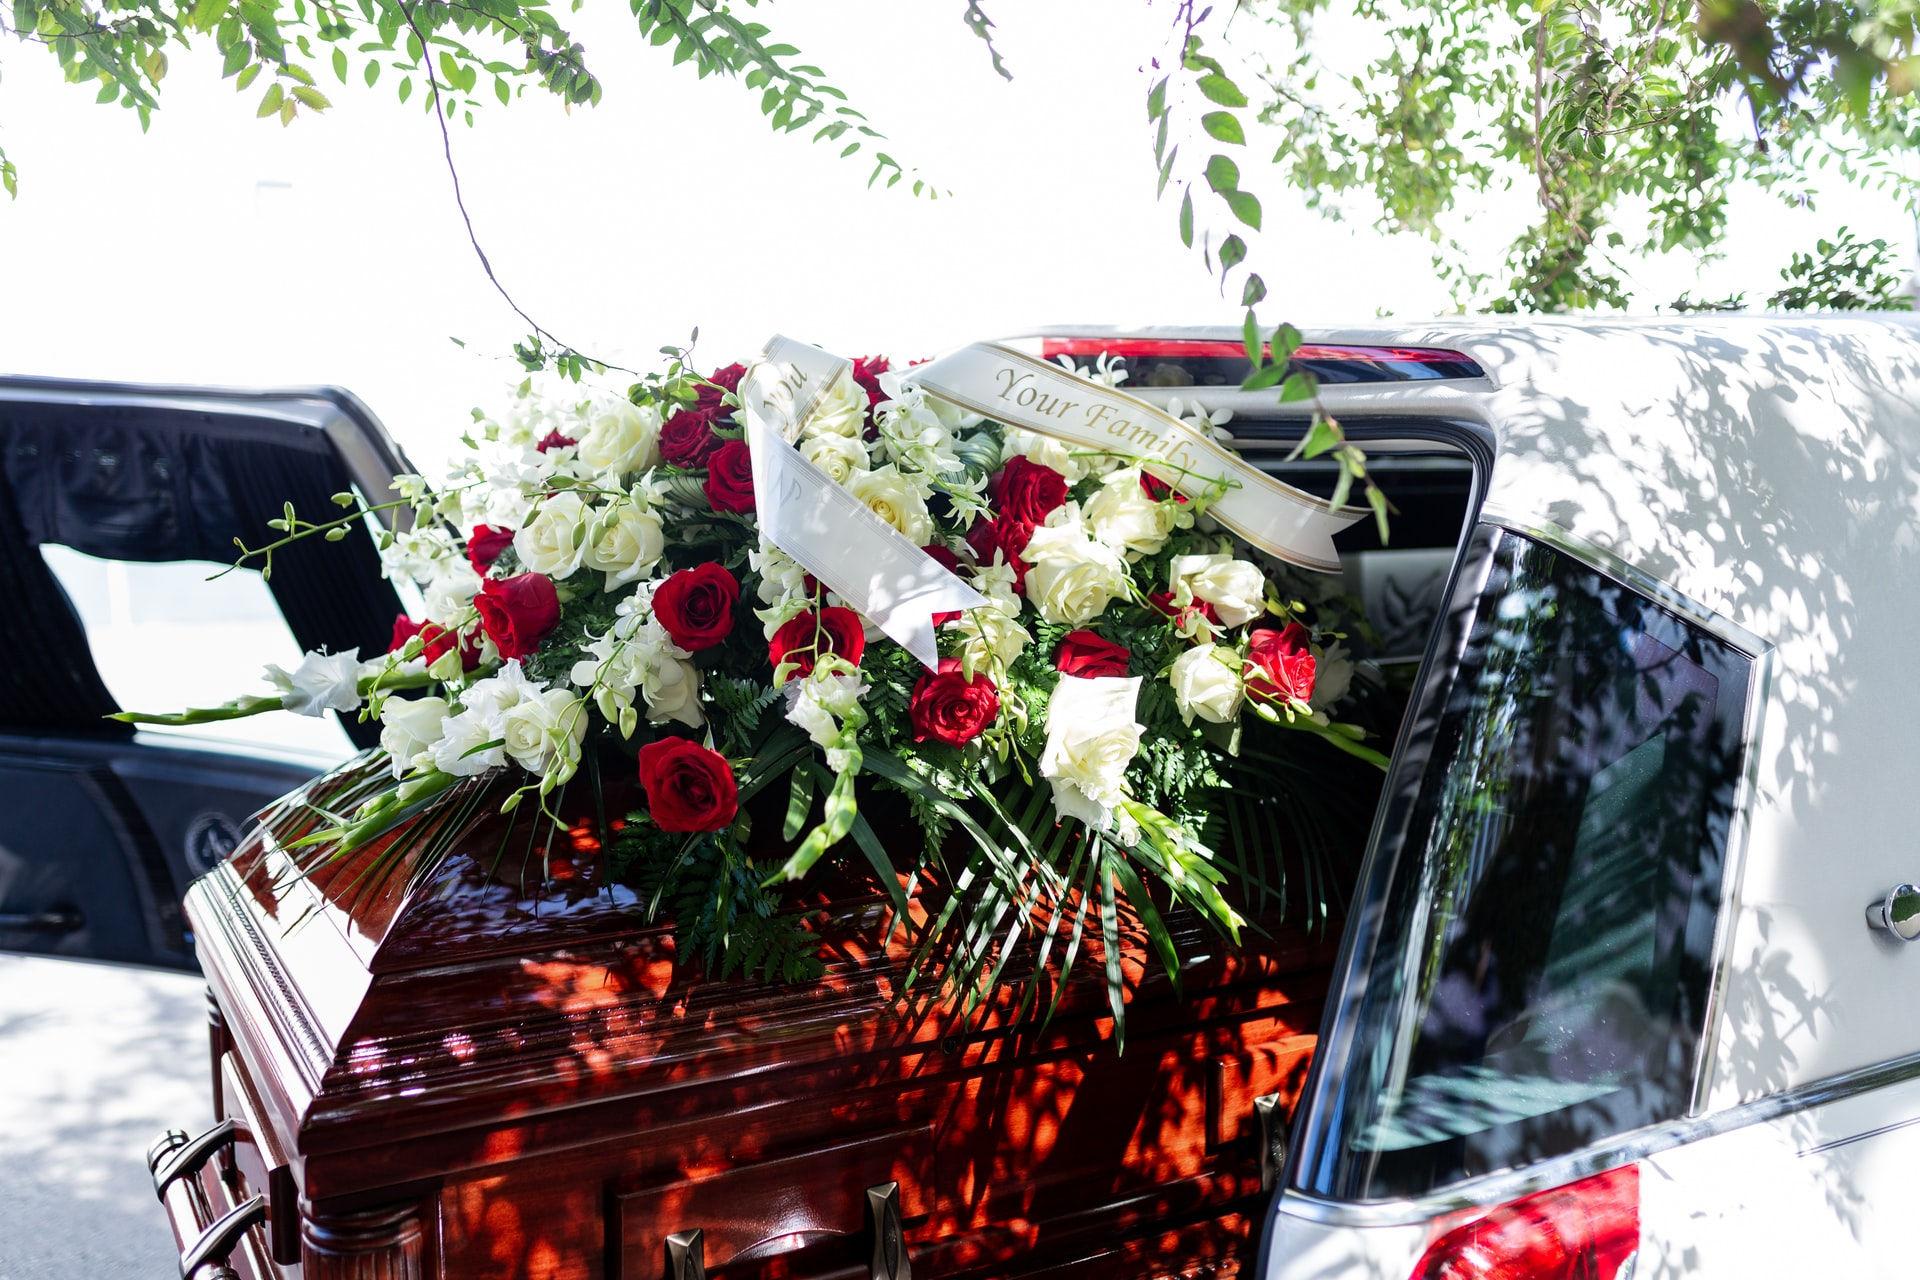 What You Should Know About Getting A Loan To Help Bury a Loved One Who Passed Away